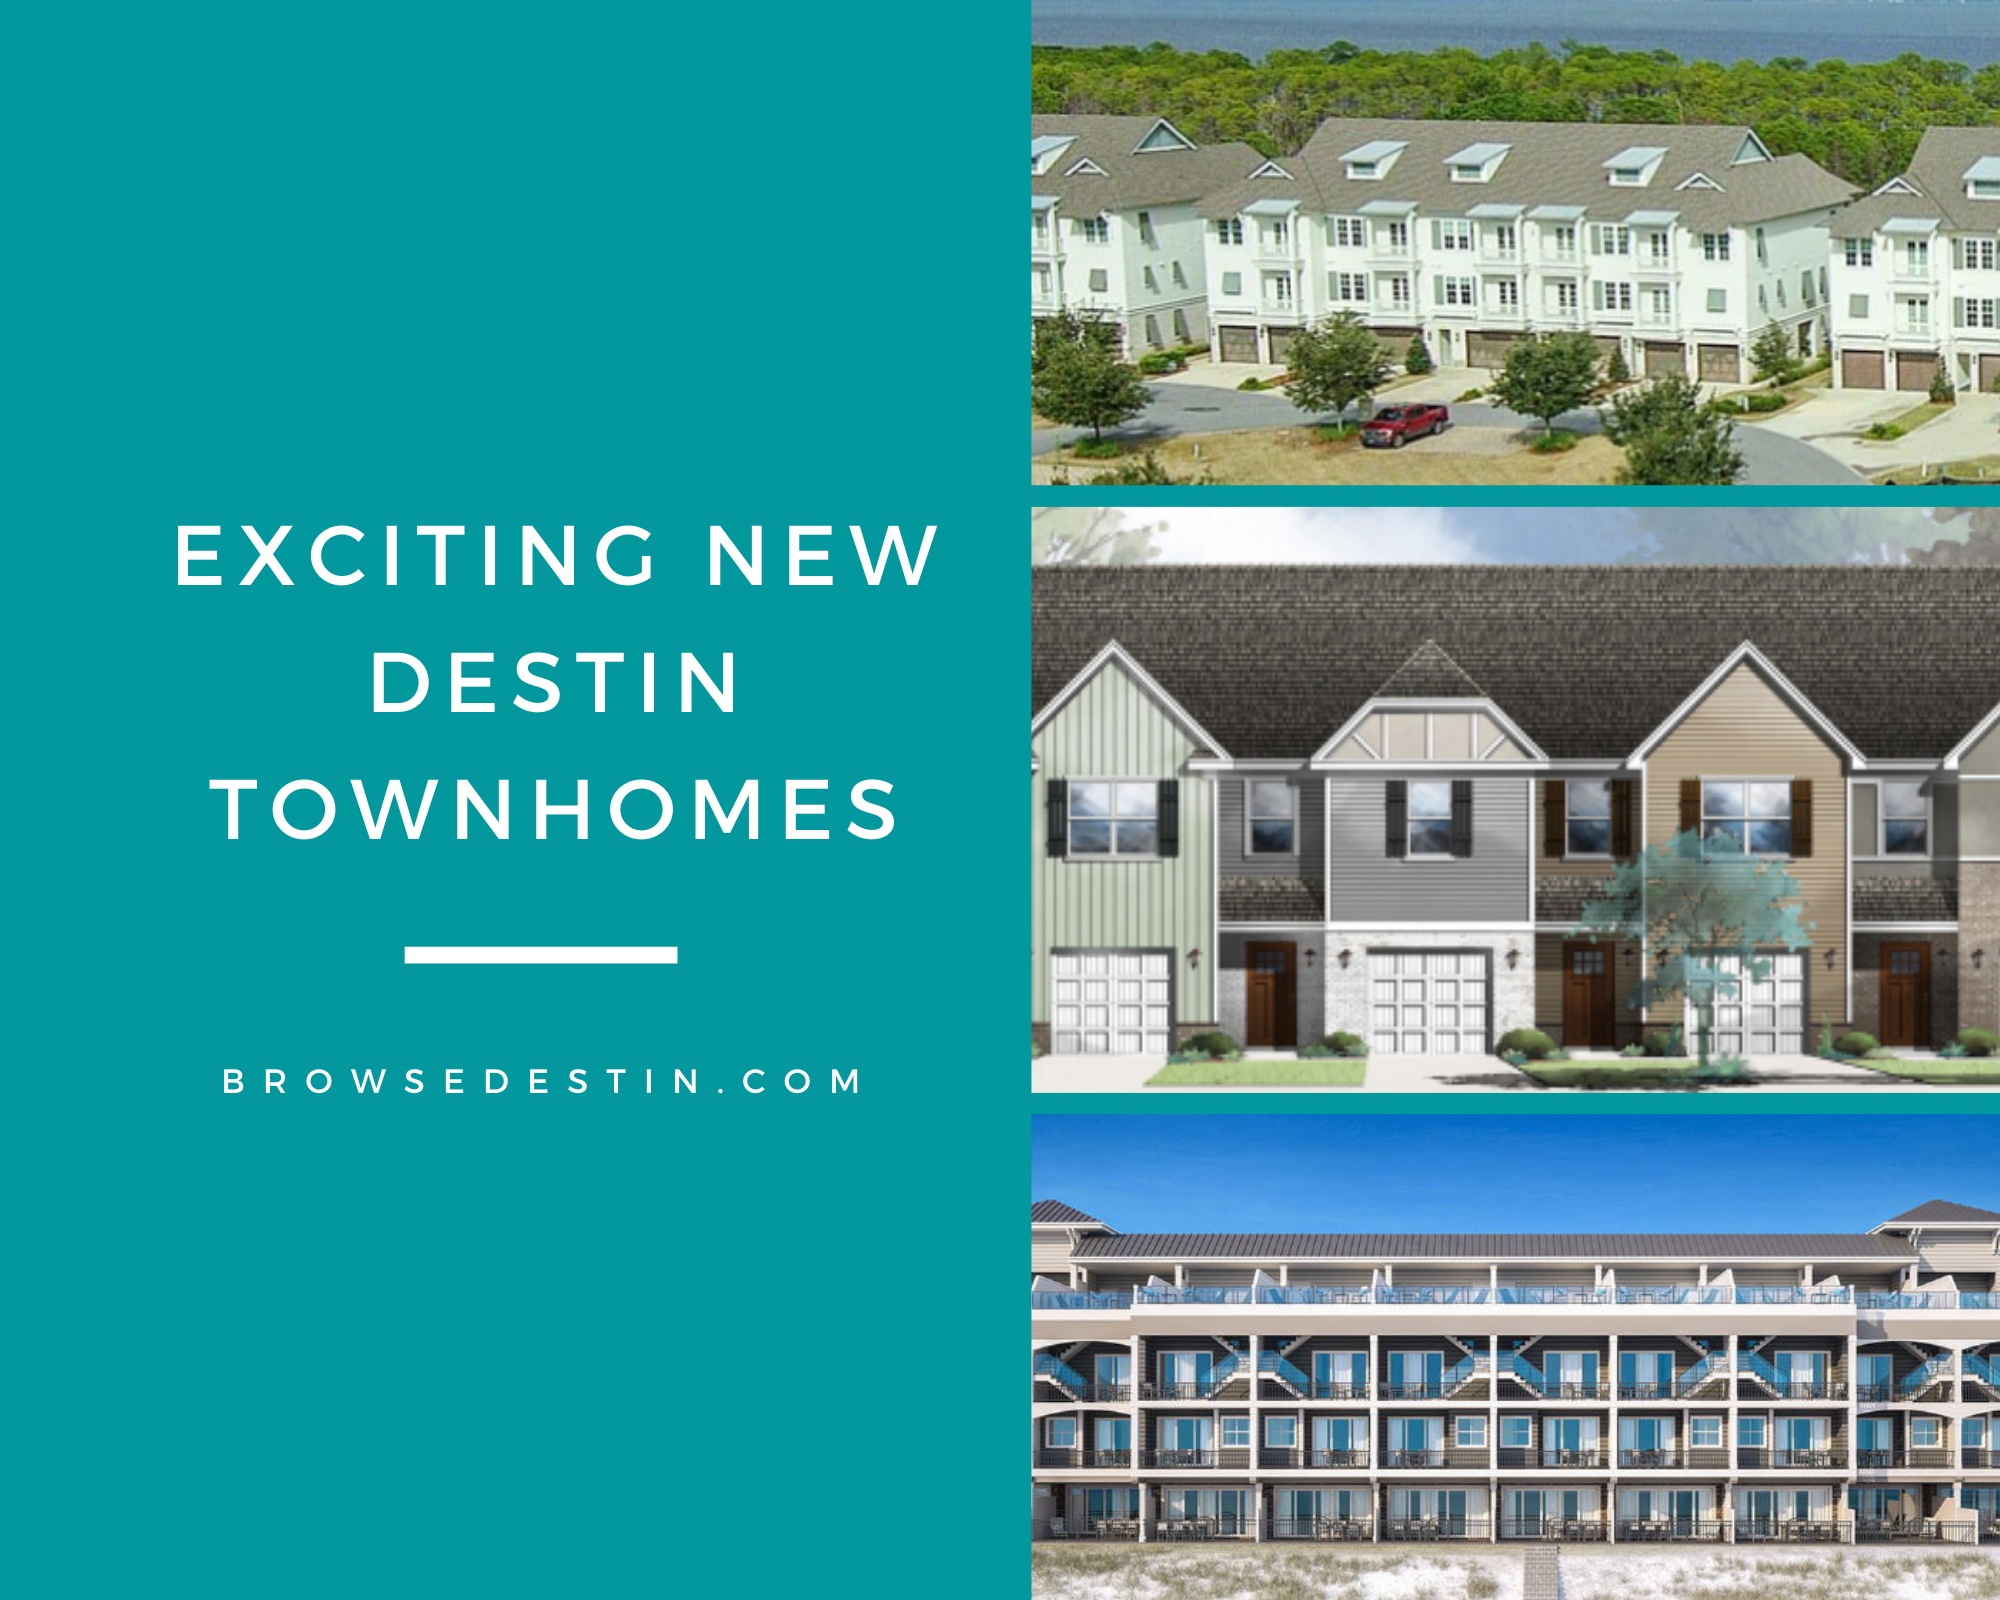 New townhomes in Destin, Florida